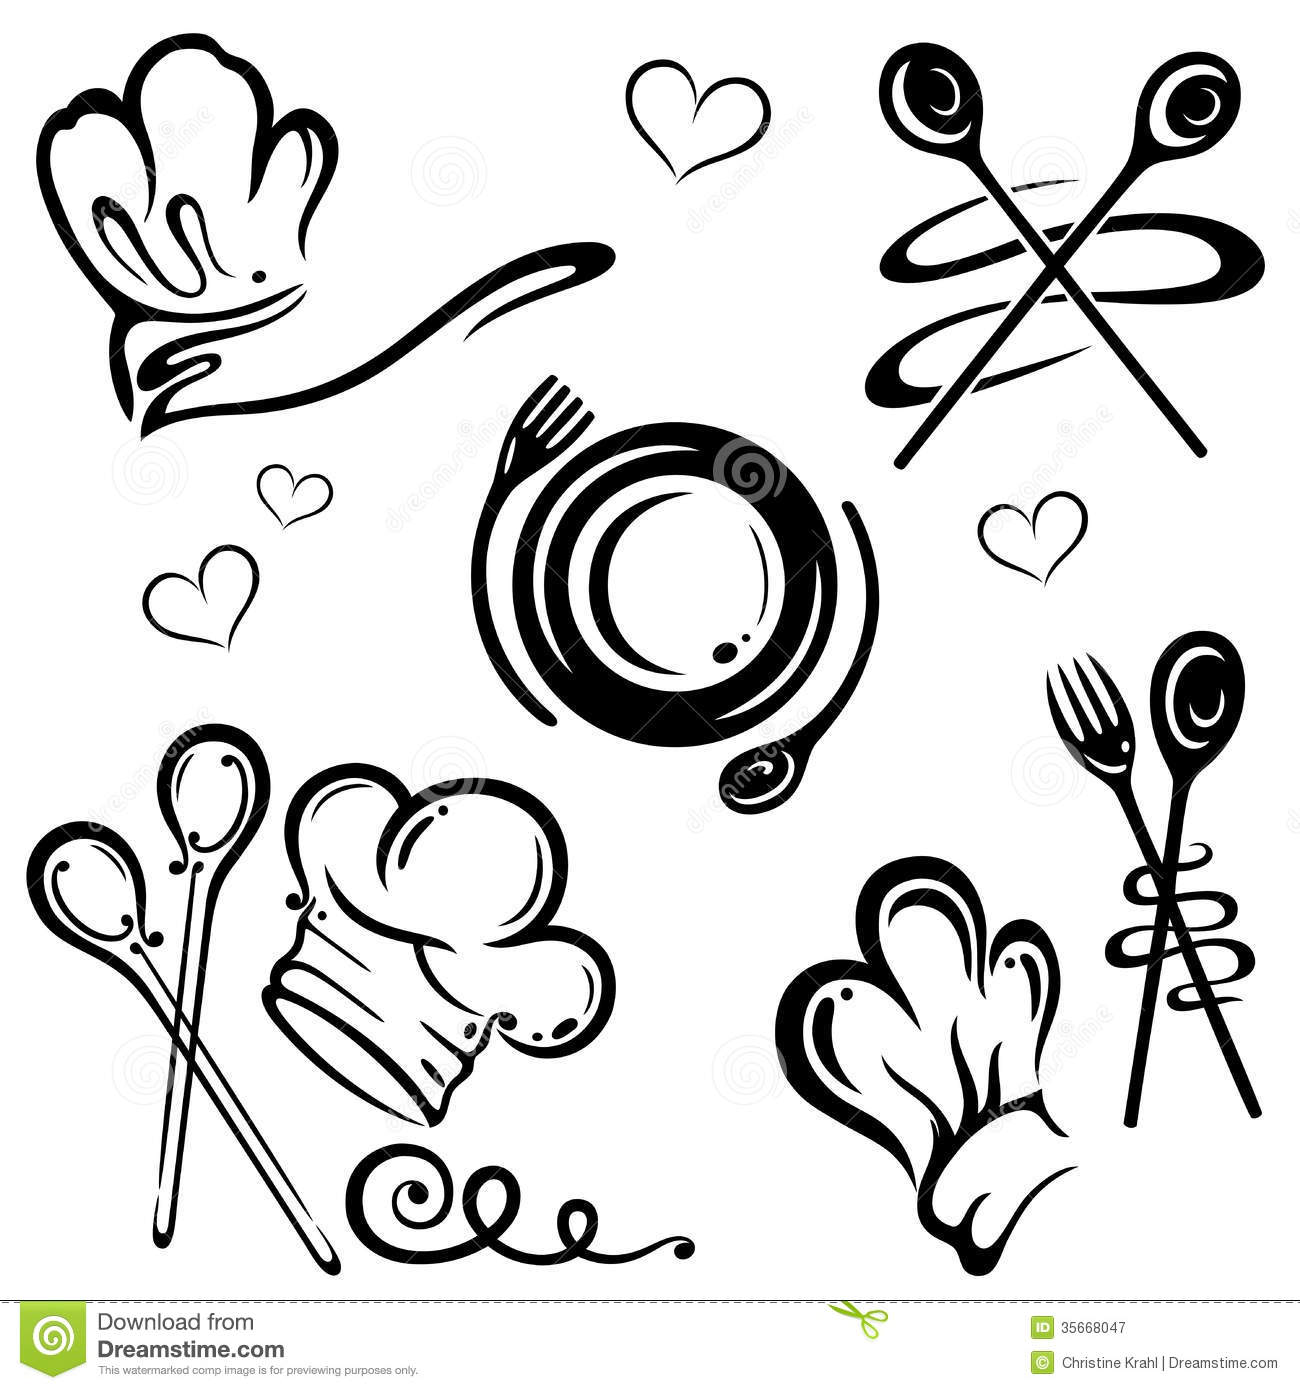 20 Free Cooking Vectors Images